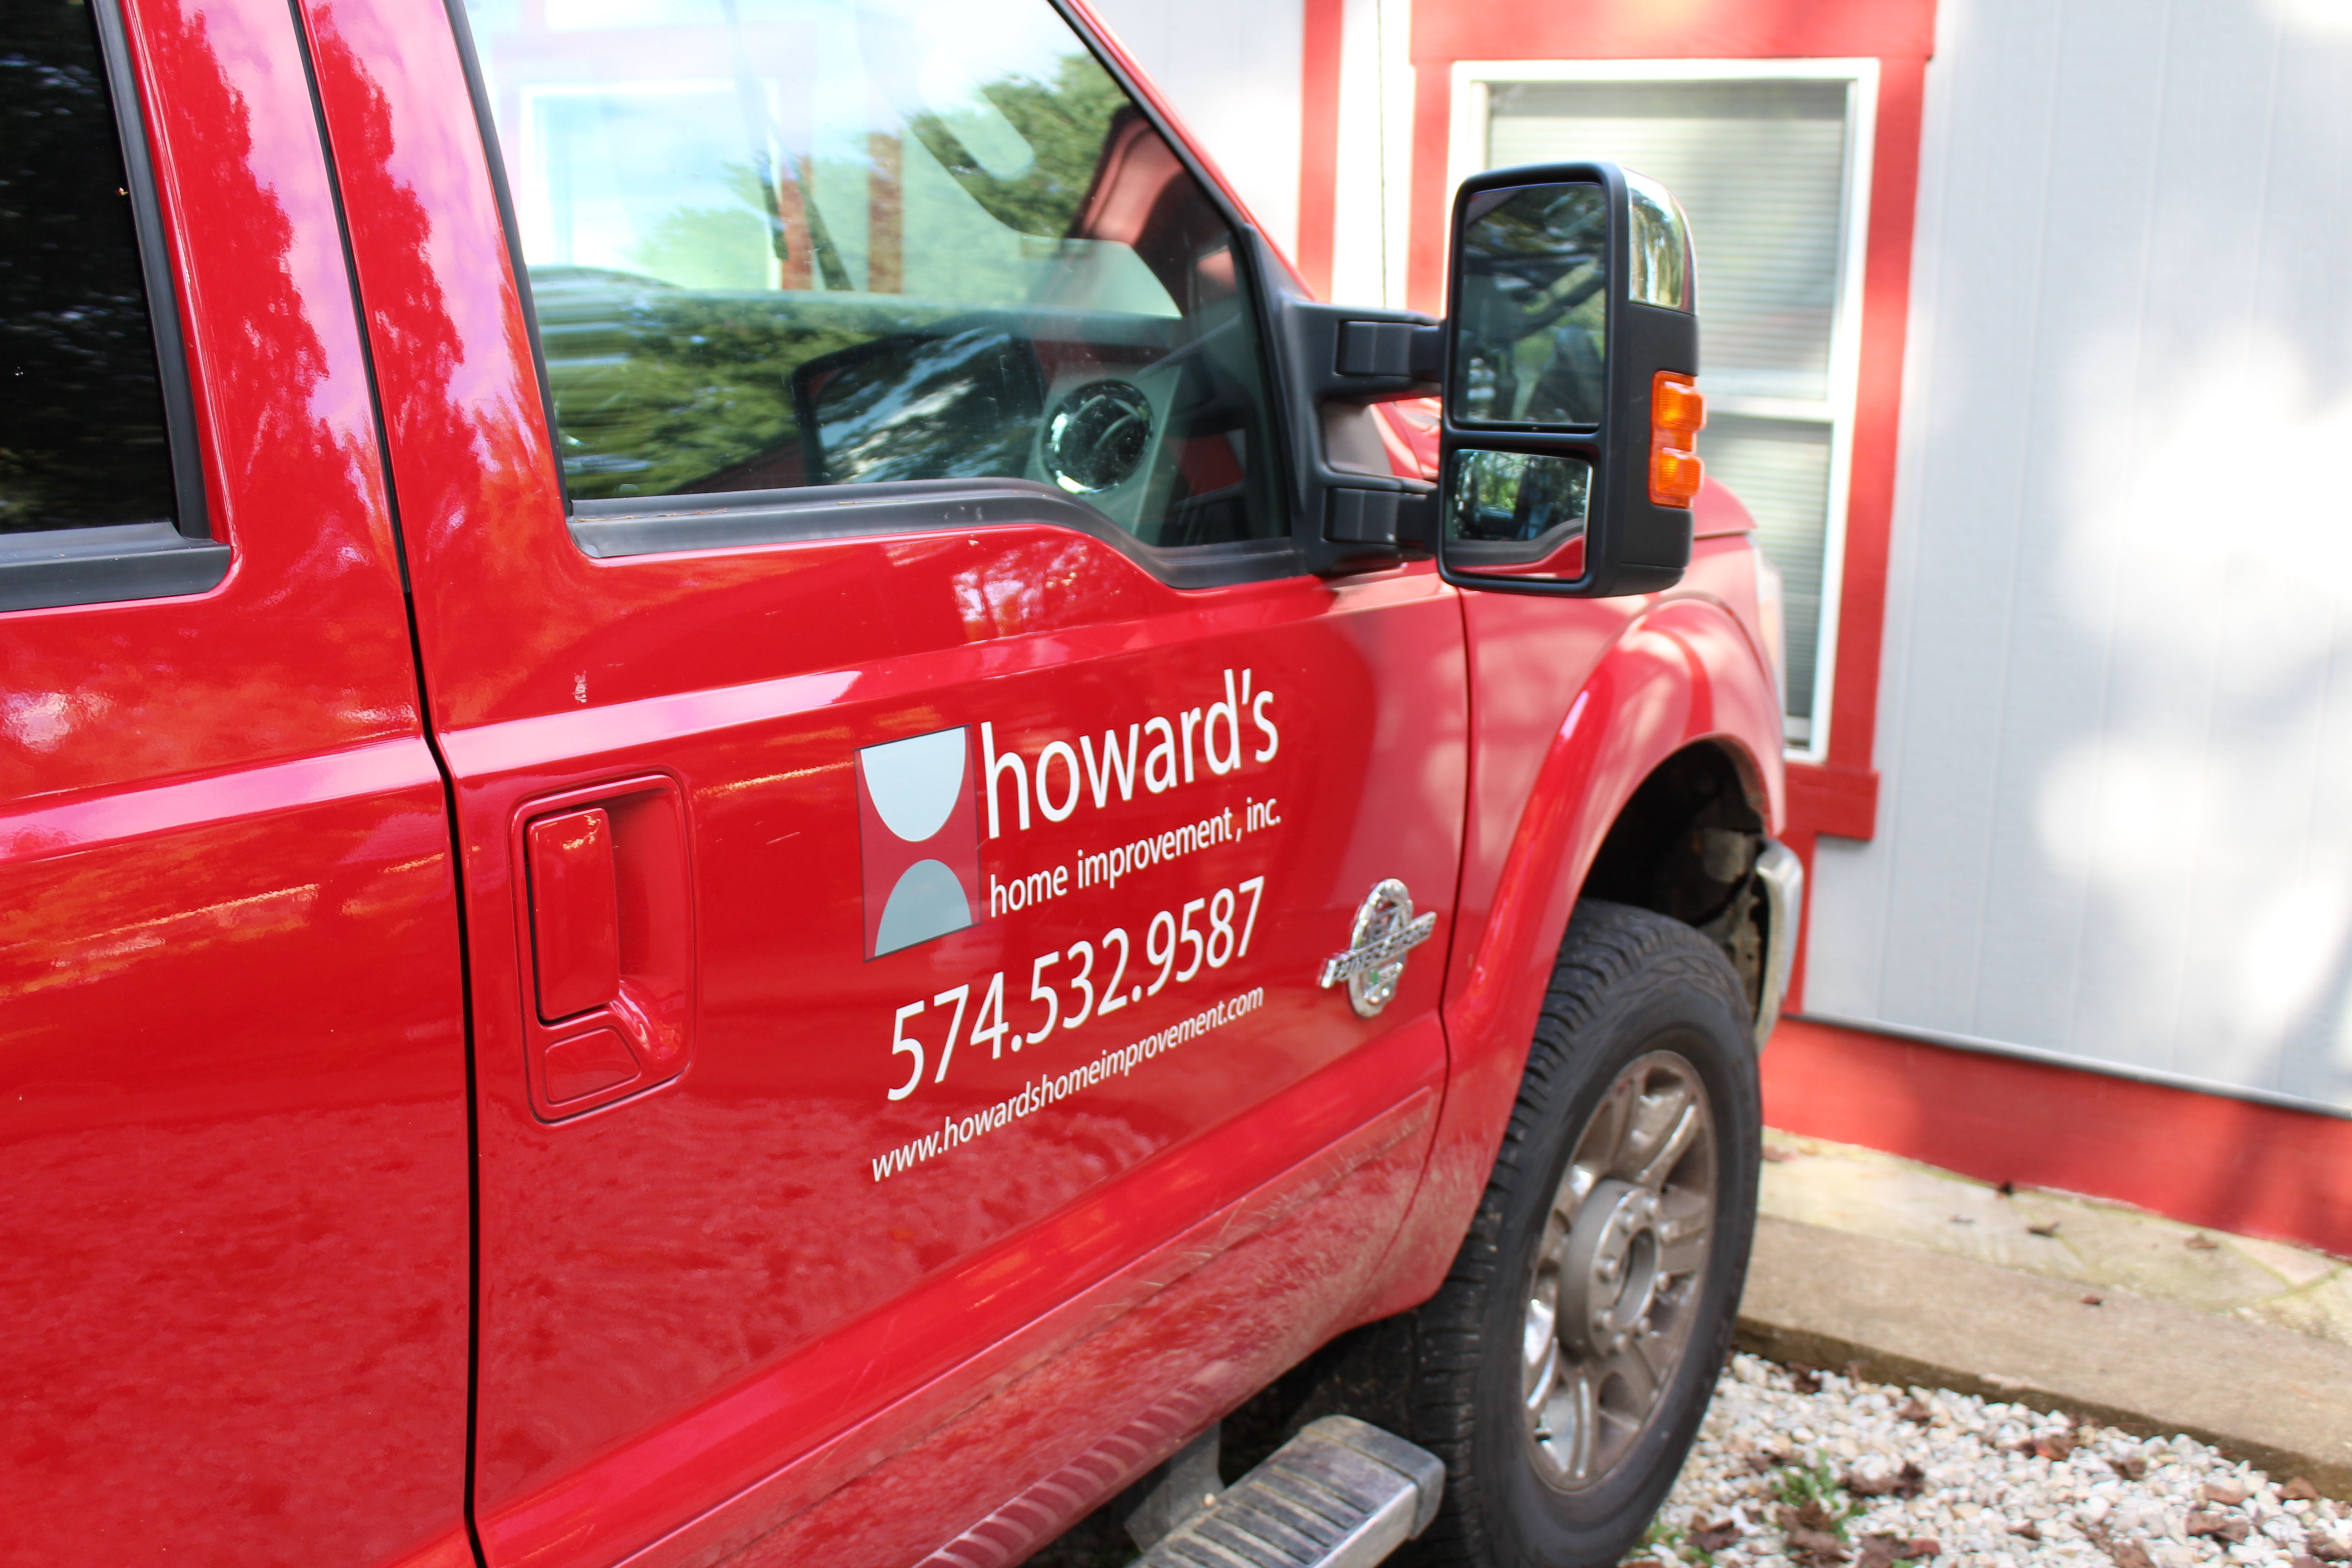 Building and Maintenance Services - Howard's Home ... on do it yourself remodeling, mobile home remodeling, bathroom remodeling, landscaping remodeling, exterior home remodeling, inside out remodeling,